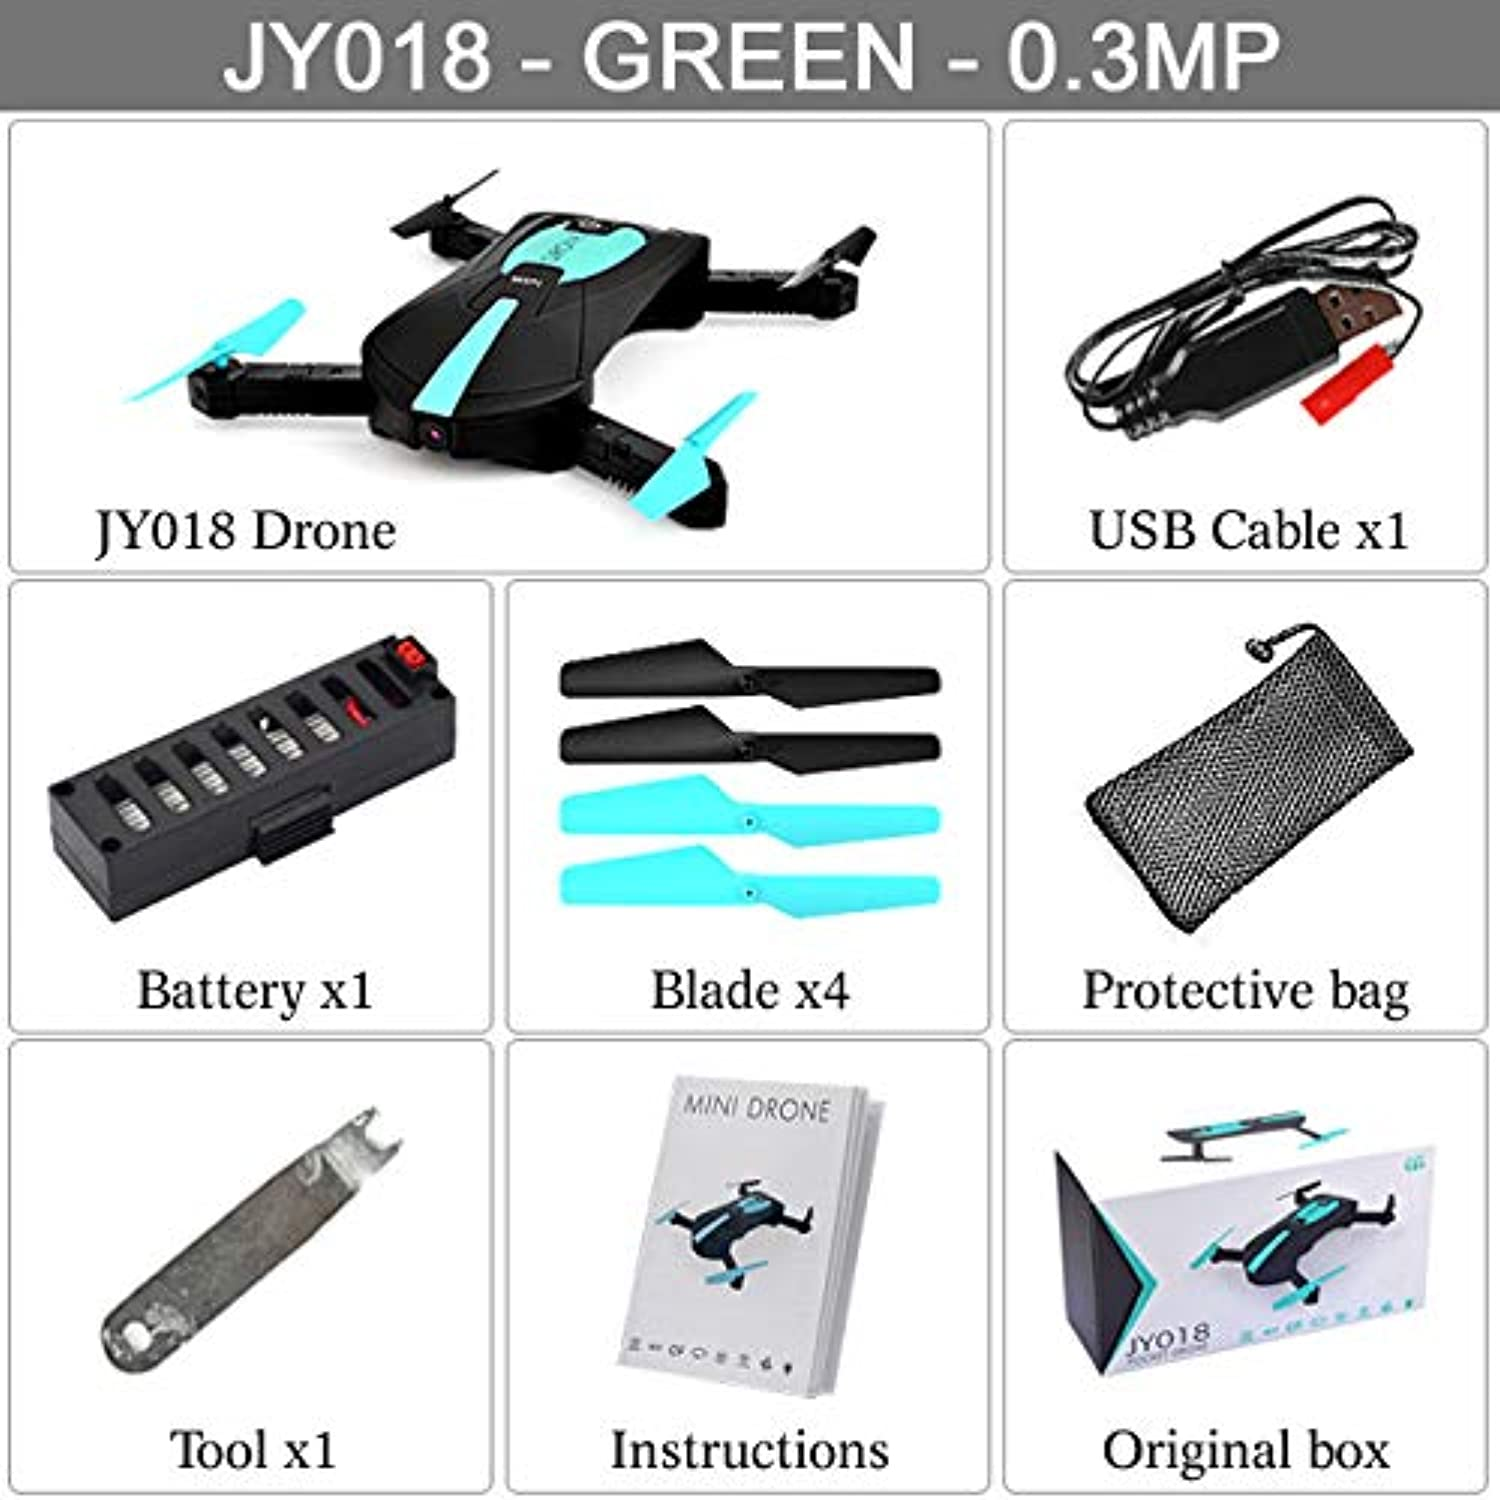 Generic JY018 Mini Foldable Selfie Portable Folding RC Drone FPV Pocket Quadcopter with Camera HD WiFi Altitude Hold Helicopter VS GW018 Green 0.3MP with Box